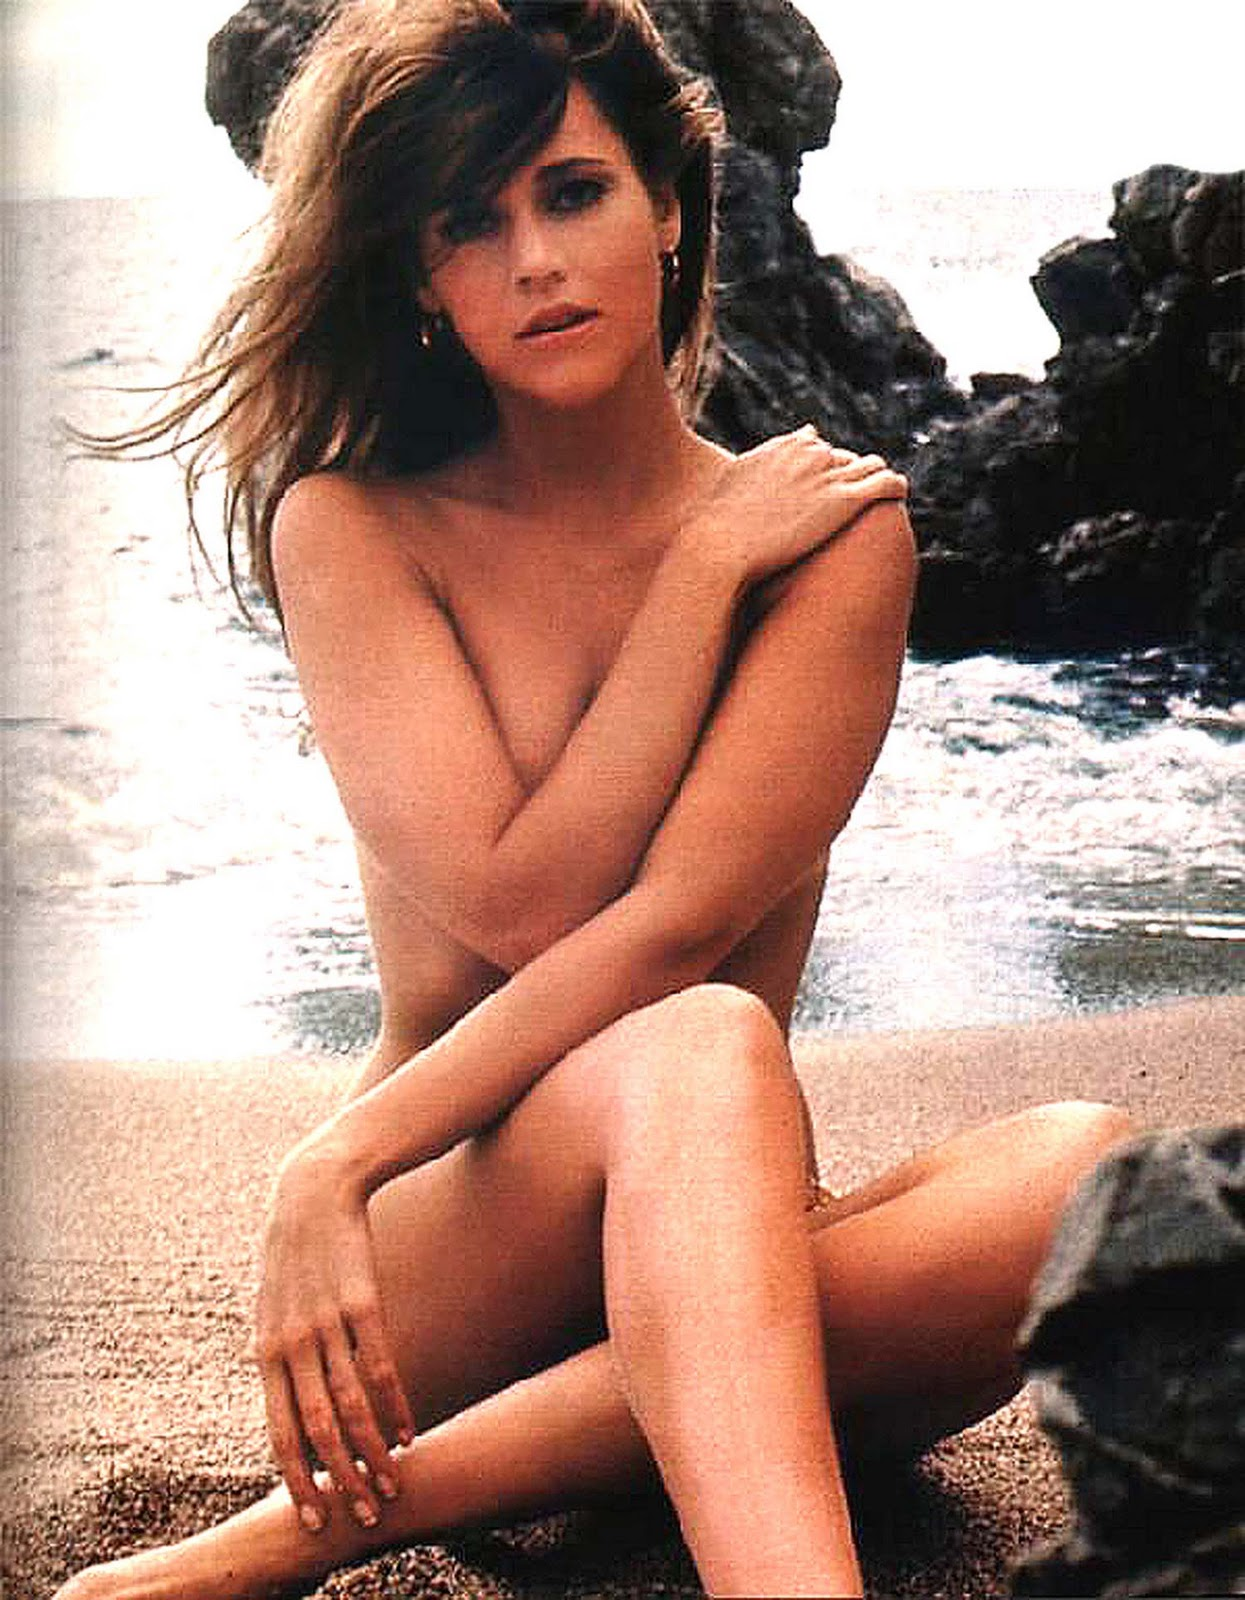 Agree, this Jane fonda young nudes amusing idea